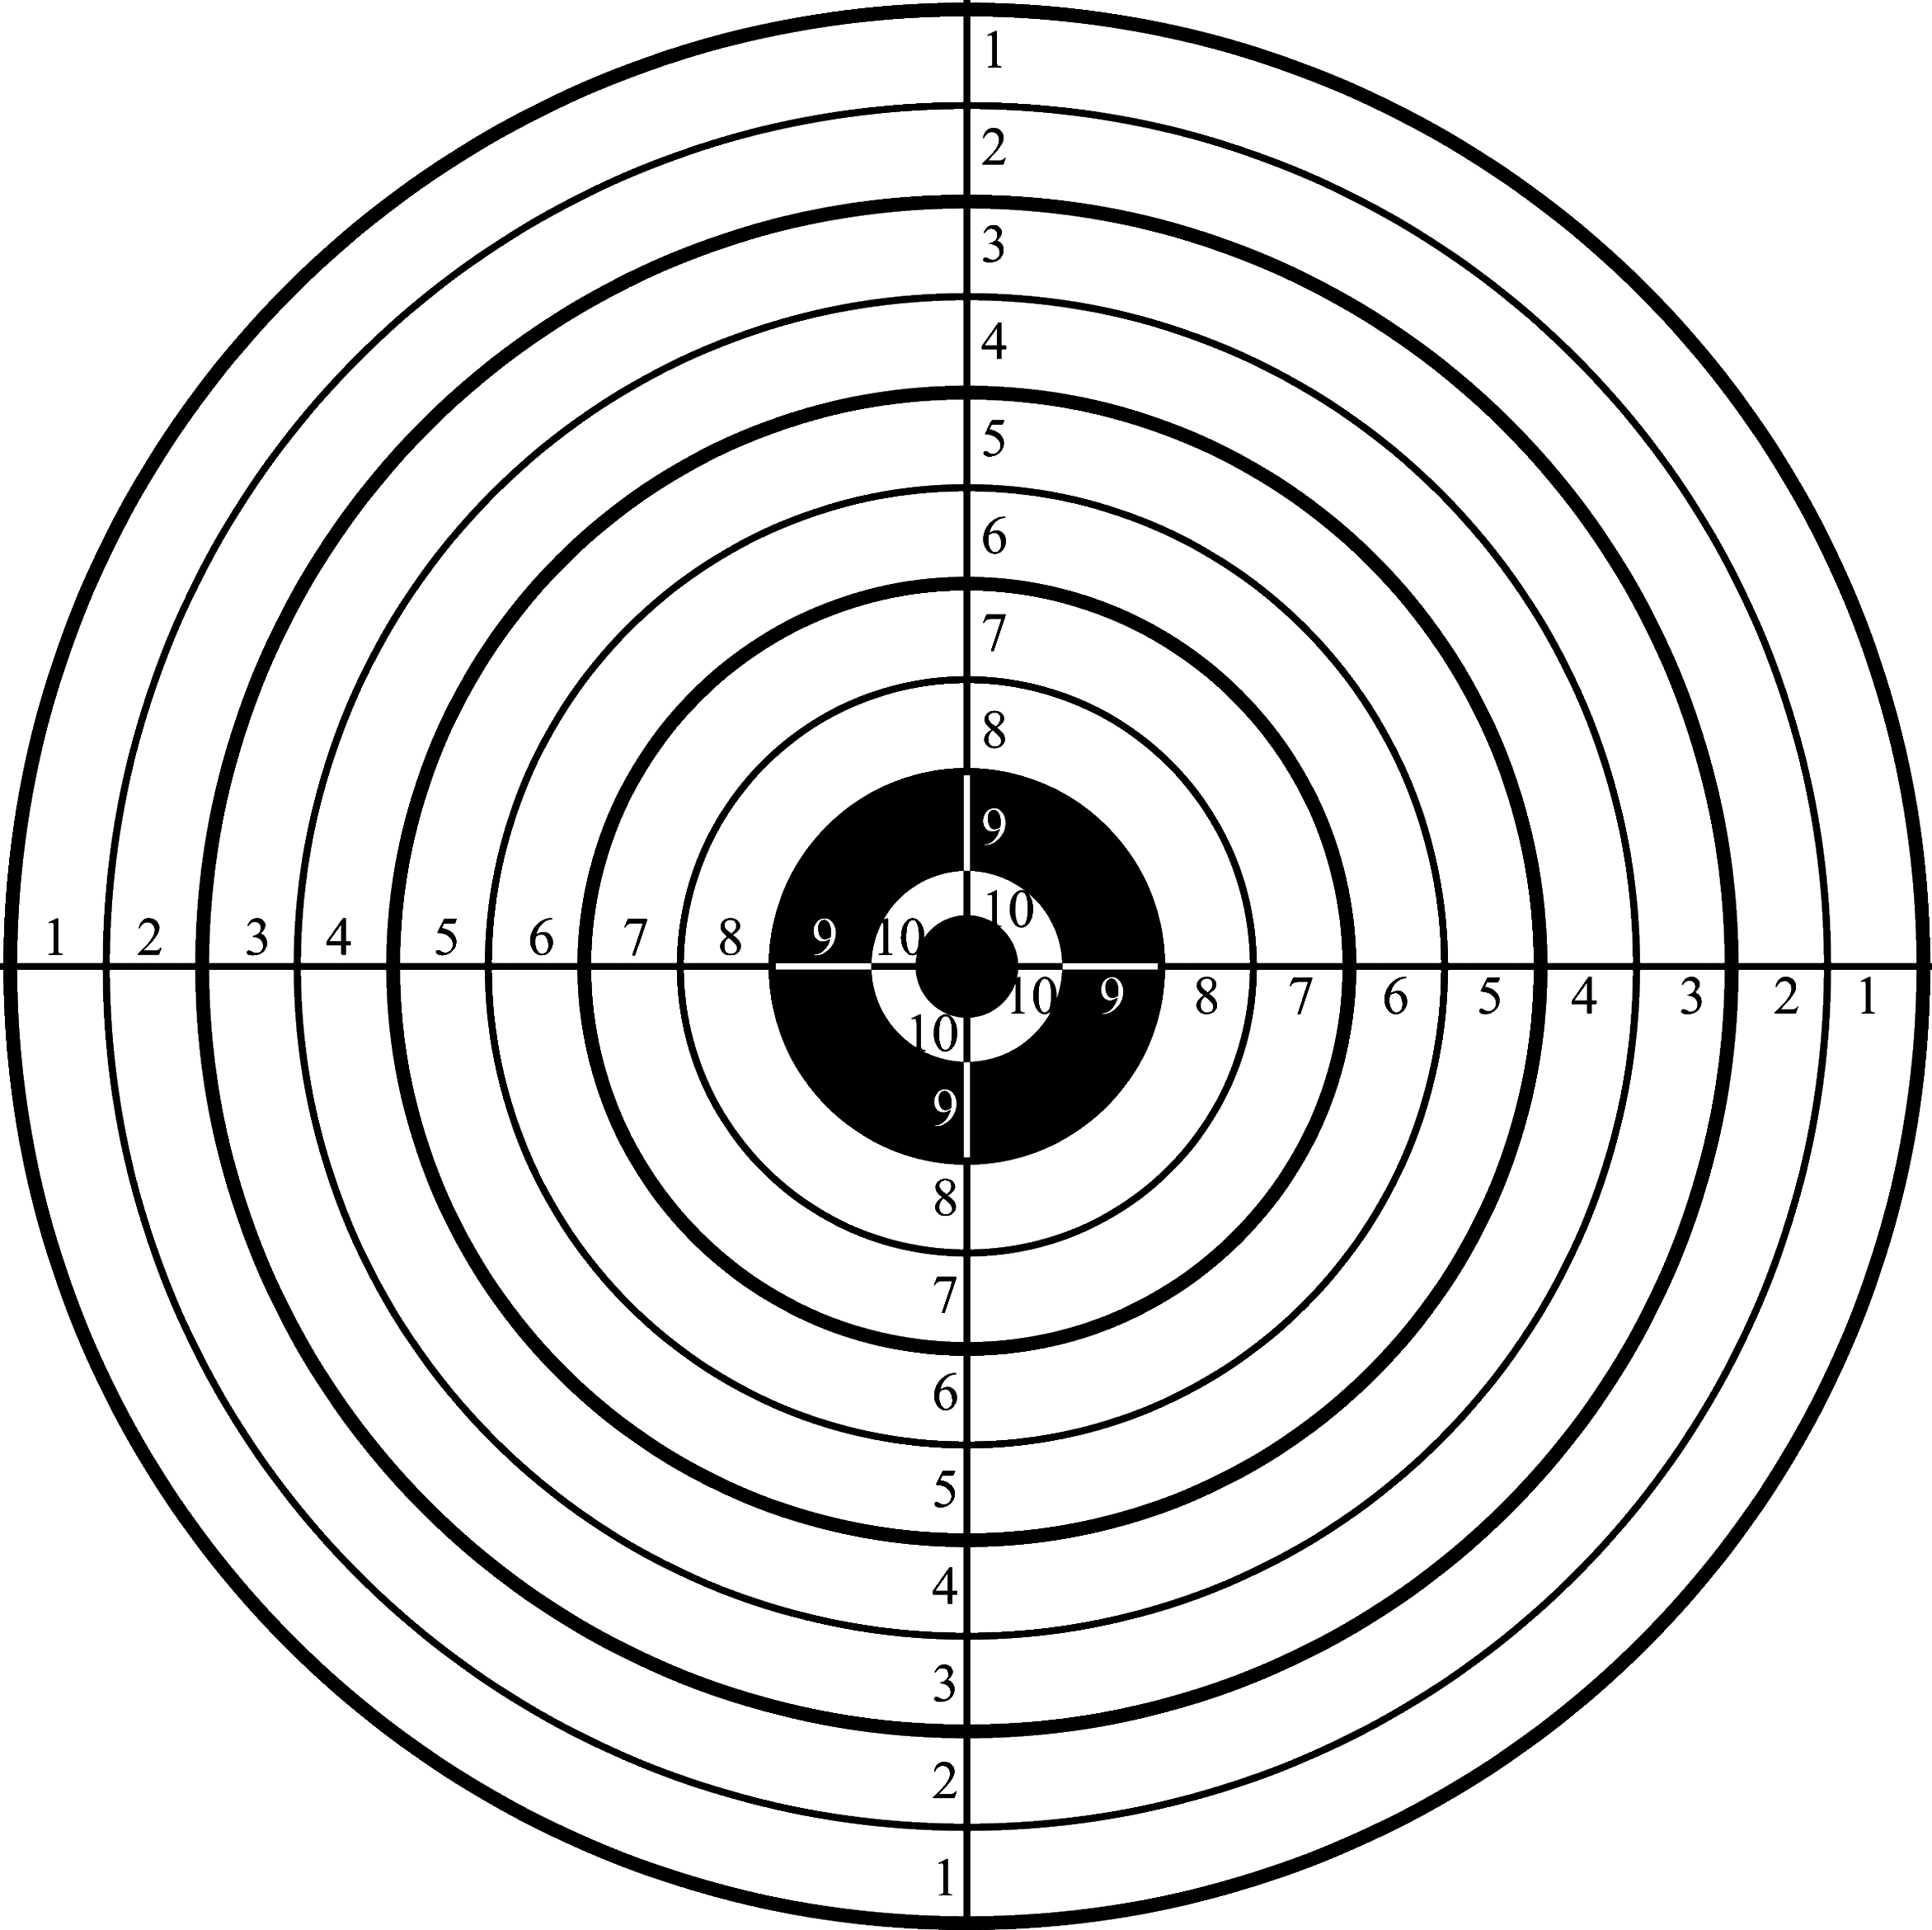 Printable Shooting Targets For Pistol, Rifle, Airgun, Archery - Free Printable Shooting Targets